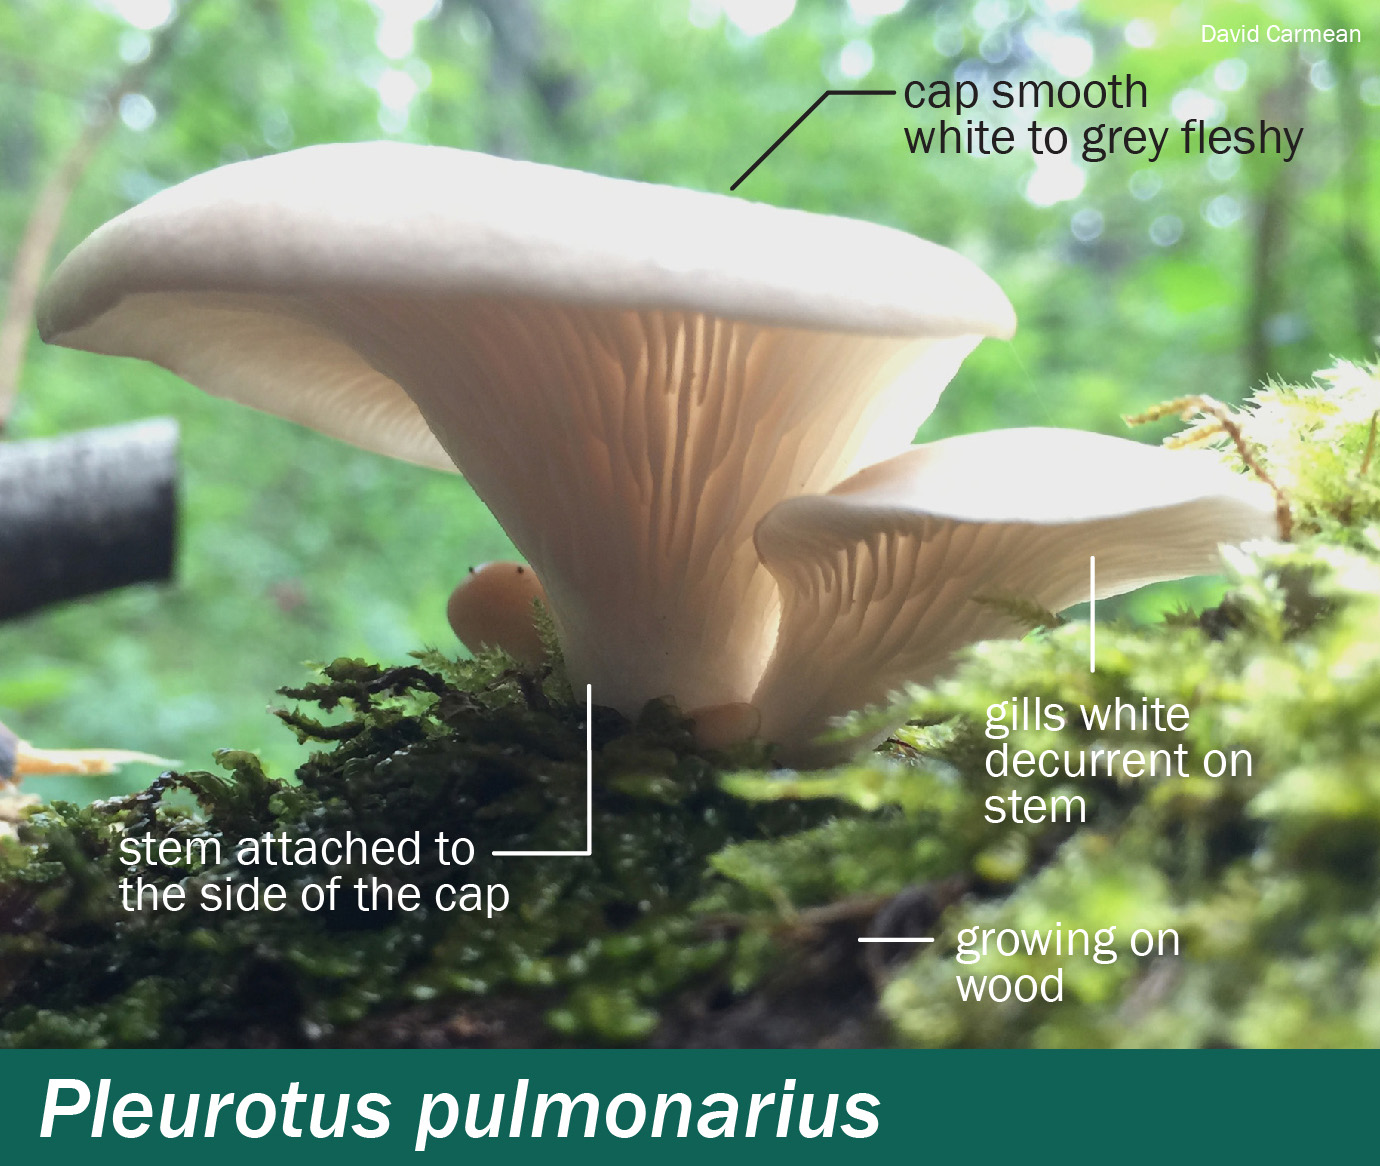 Pleurotus pulmonarius – Mushrooms Up! Edible and Poisonous Species